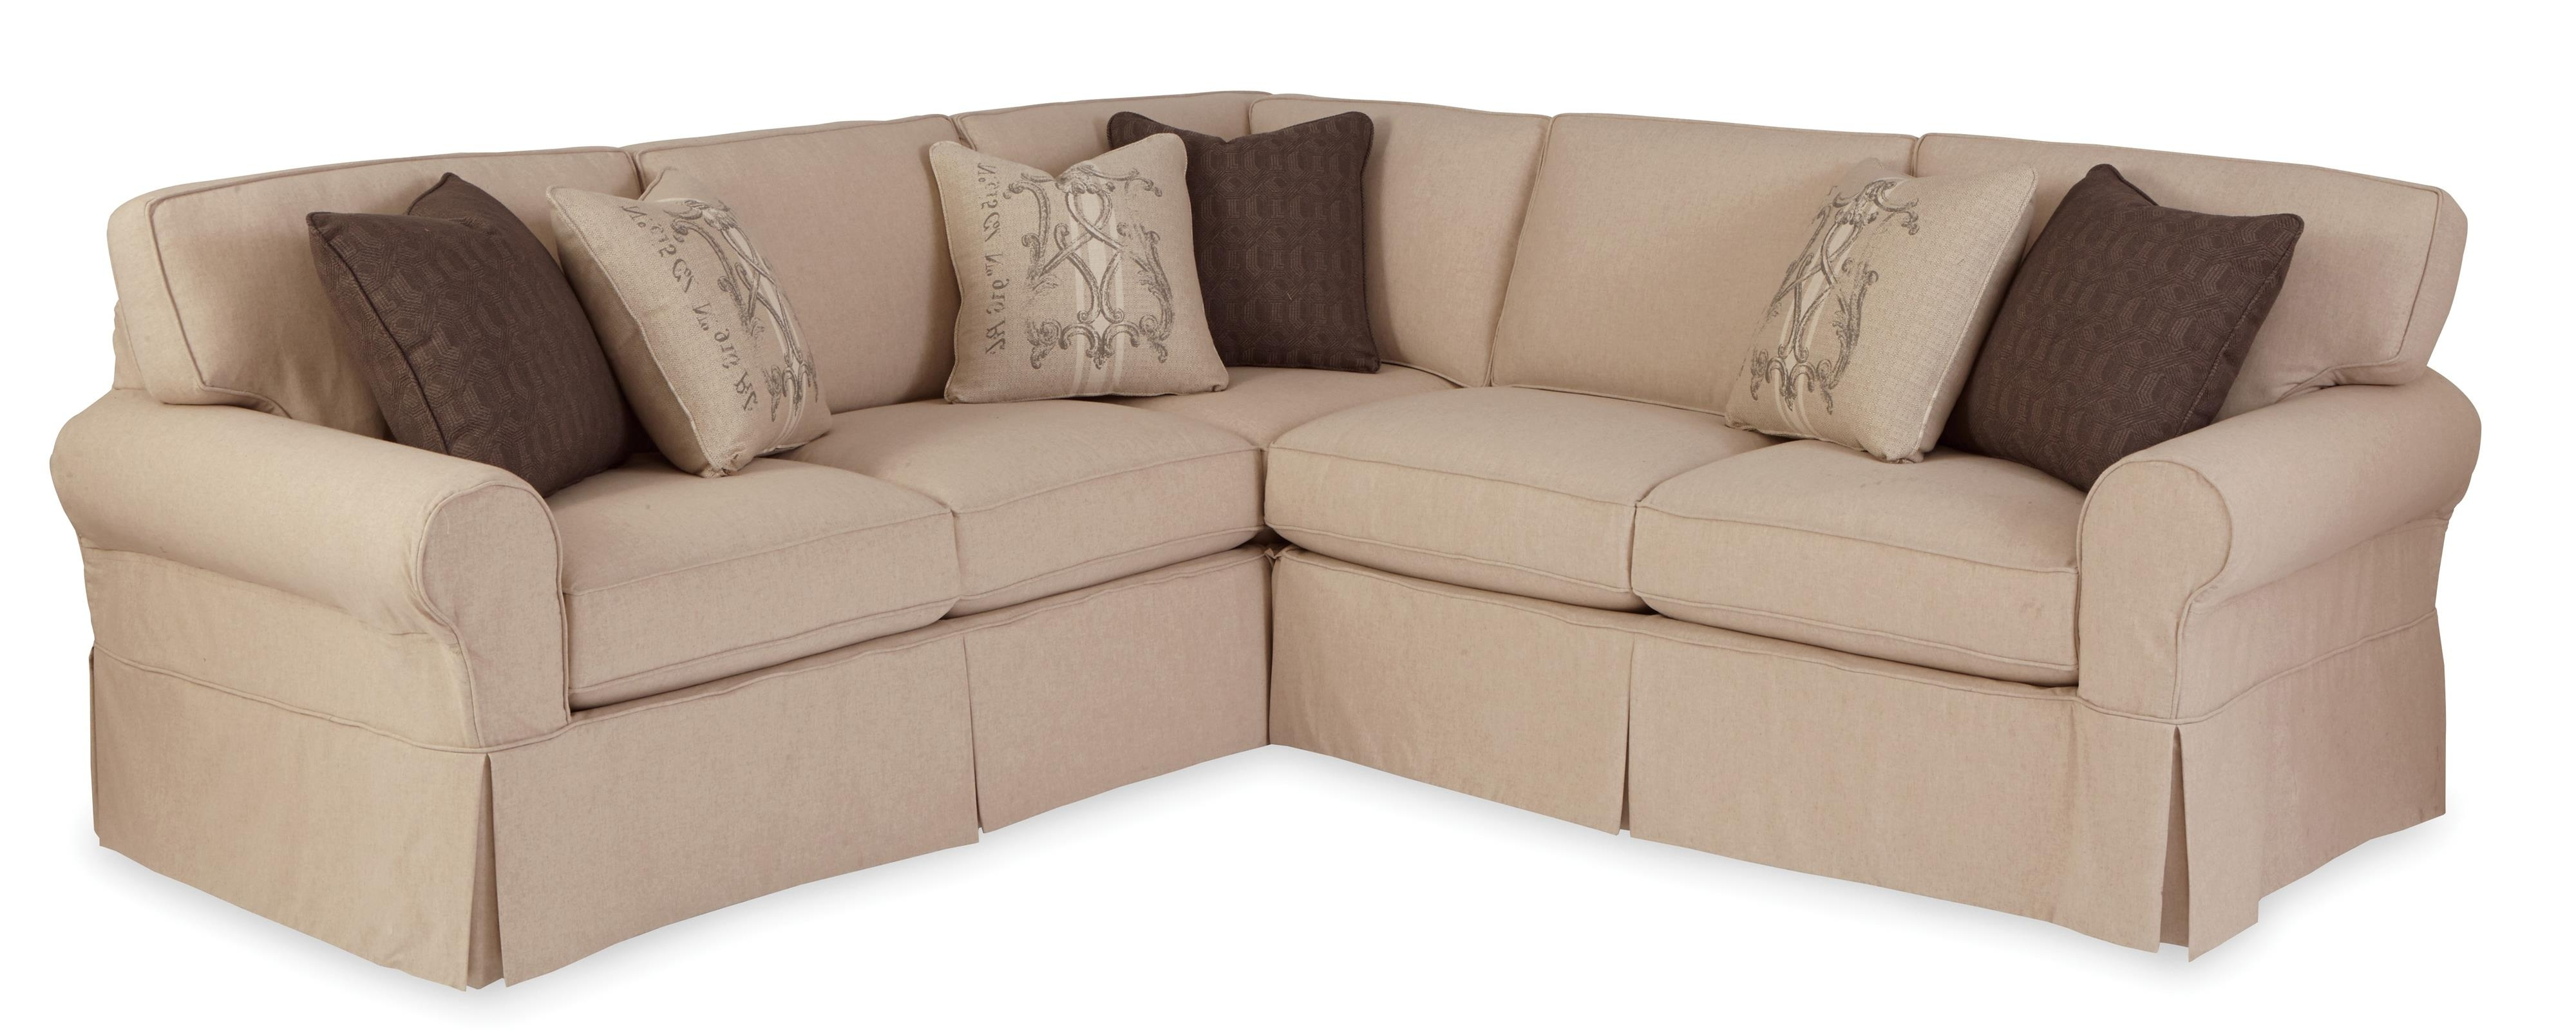 Sectional Sofas At Walmart In Newest Sectional Sofa Slipcovers (View 8 of 15)